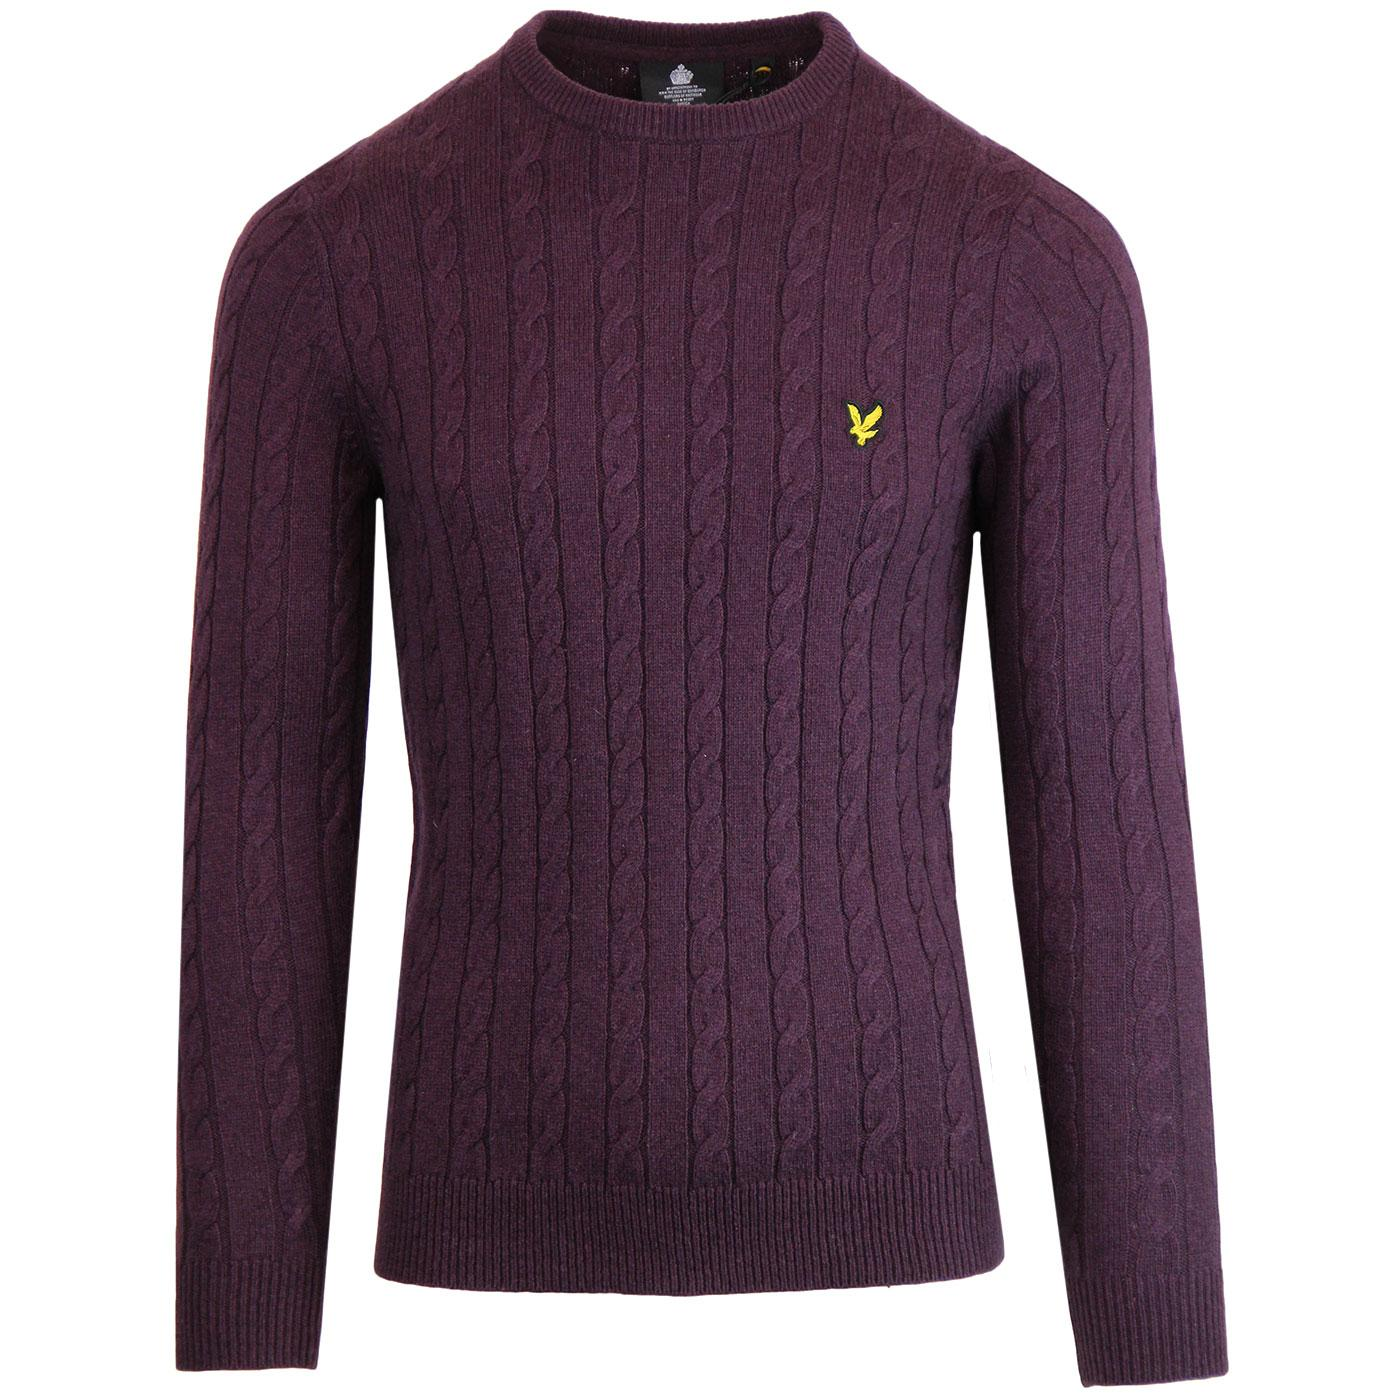 LYLE & SCOTT Retro Mod Cable Knit Jumper DEEP PLUM